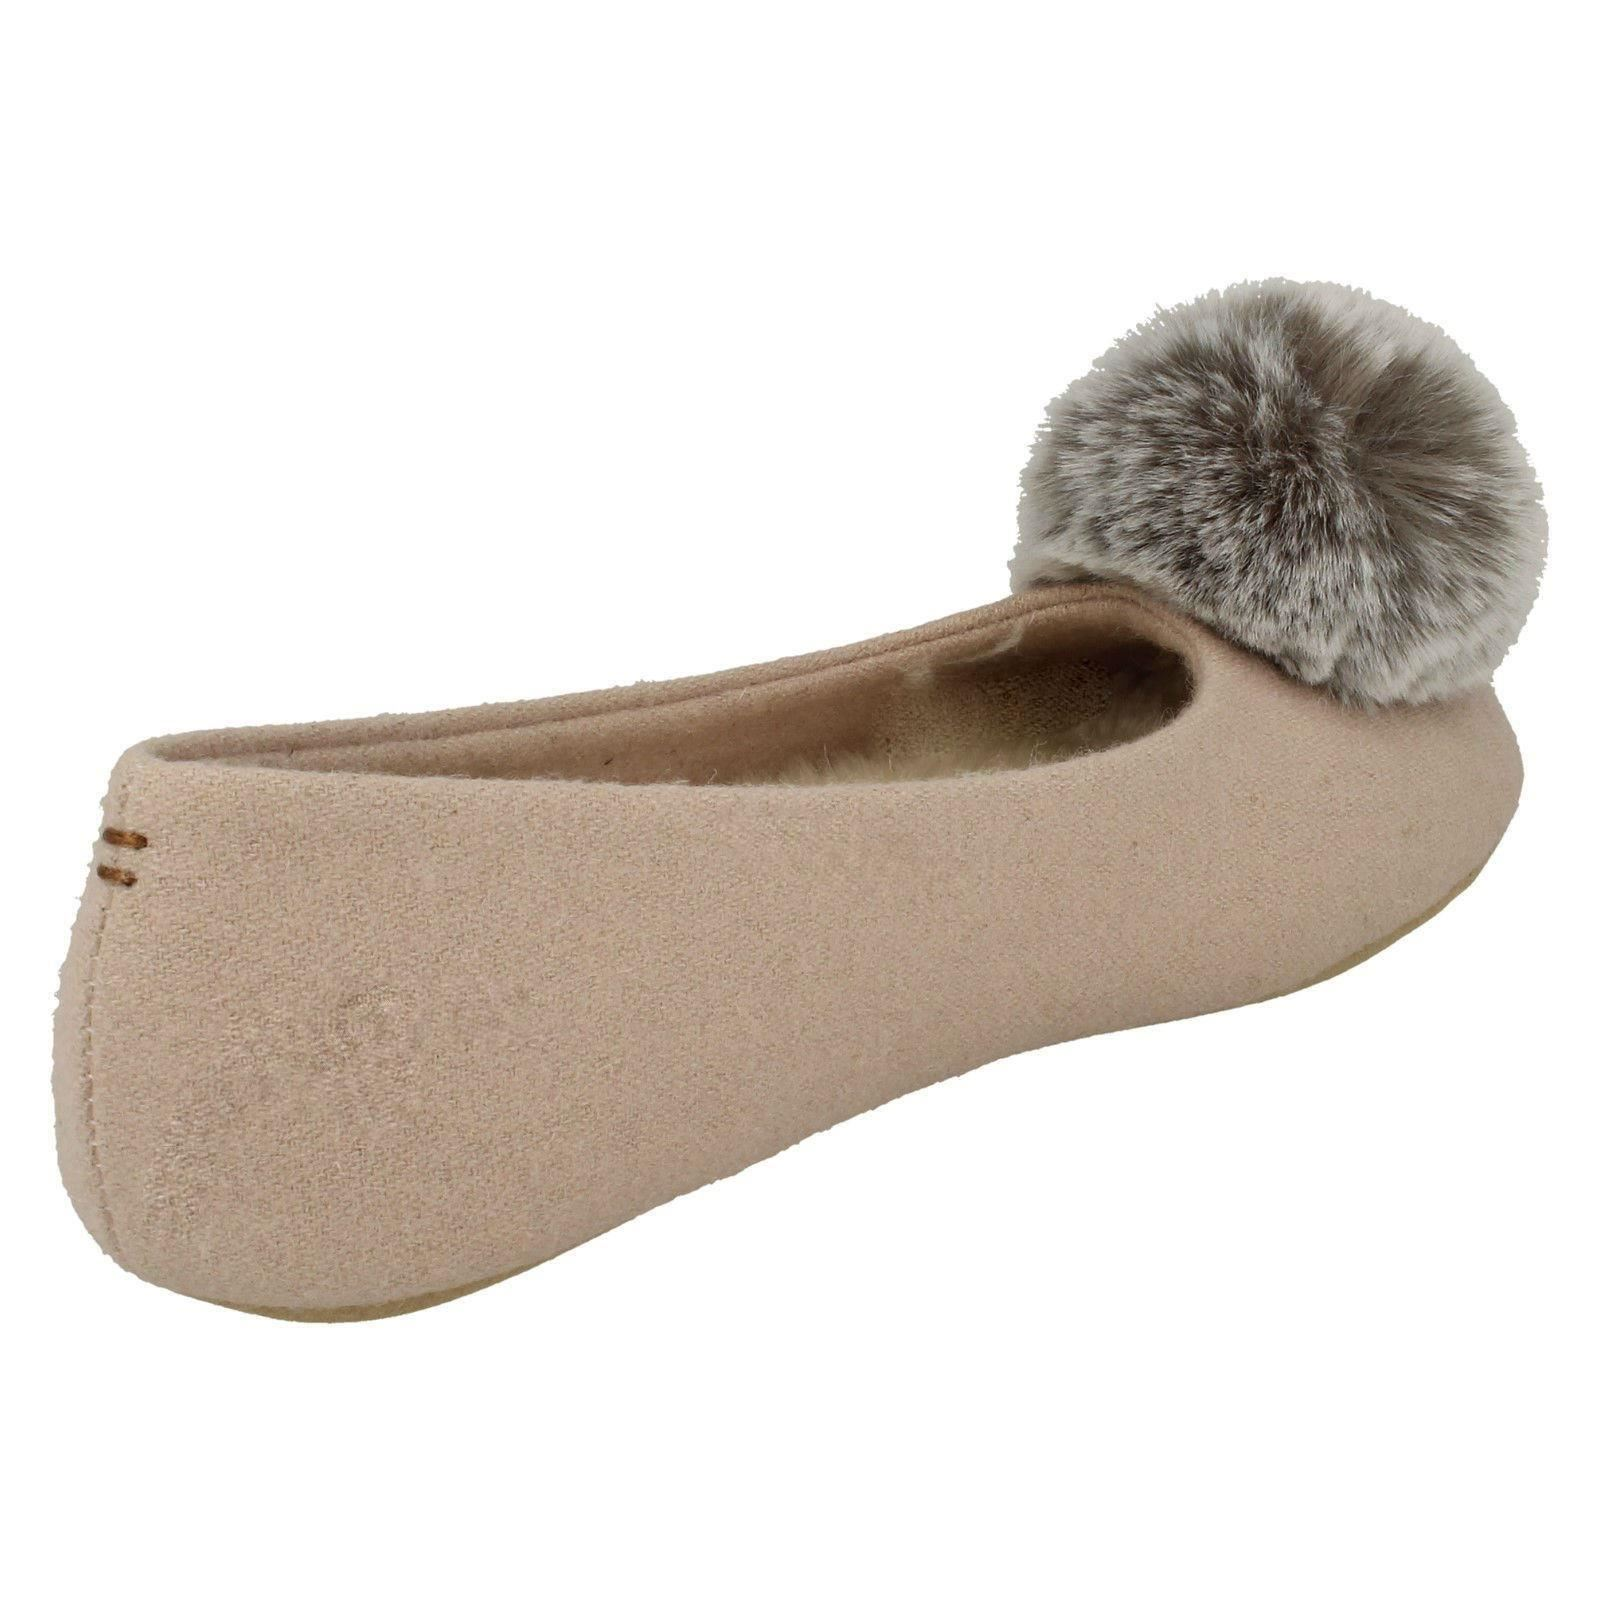 Ladies Clarks Rounded Toe Slip On Textile Pom Pom Slippers Cozily Warm